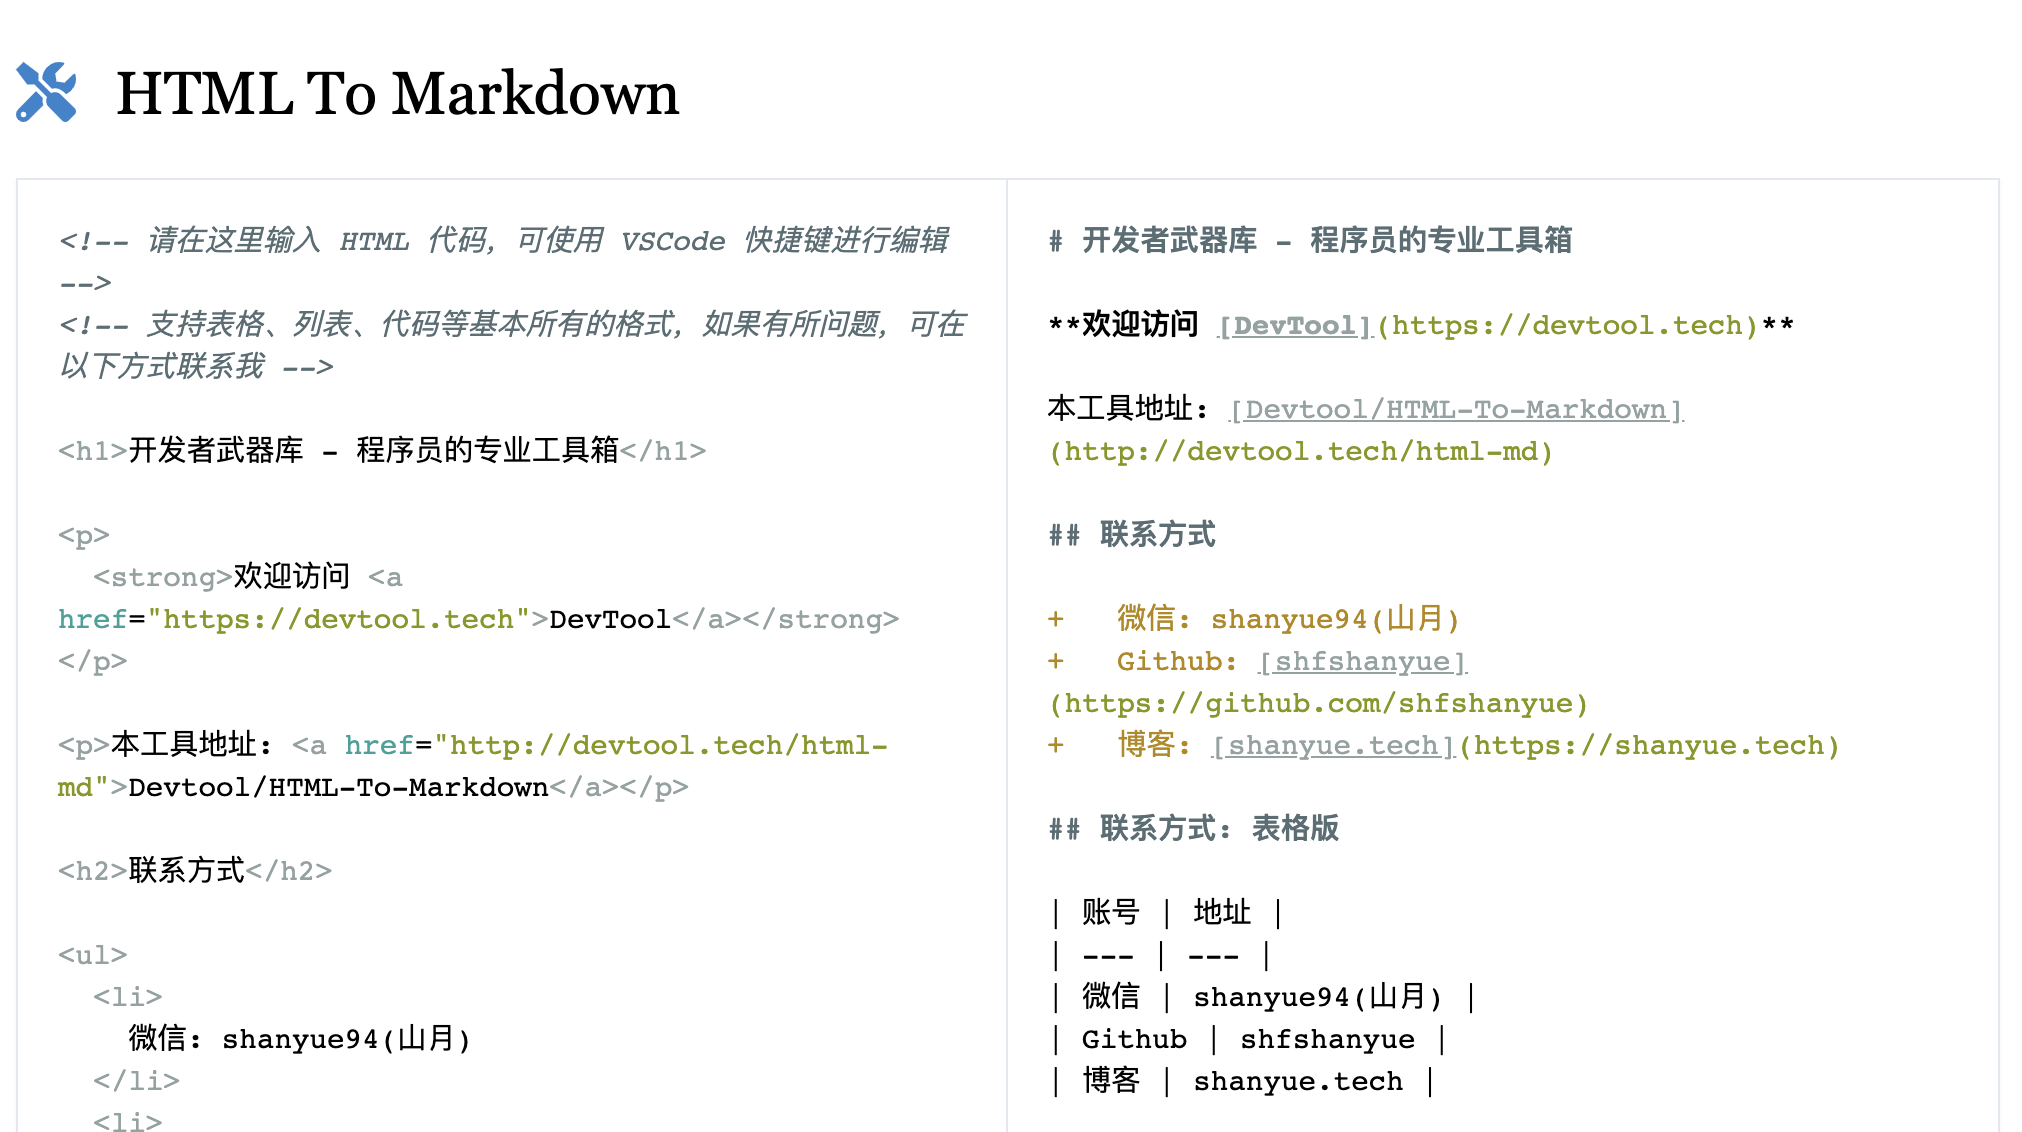 HTML To Markdown 网页版